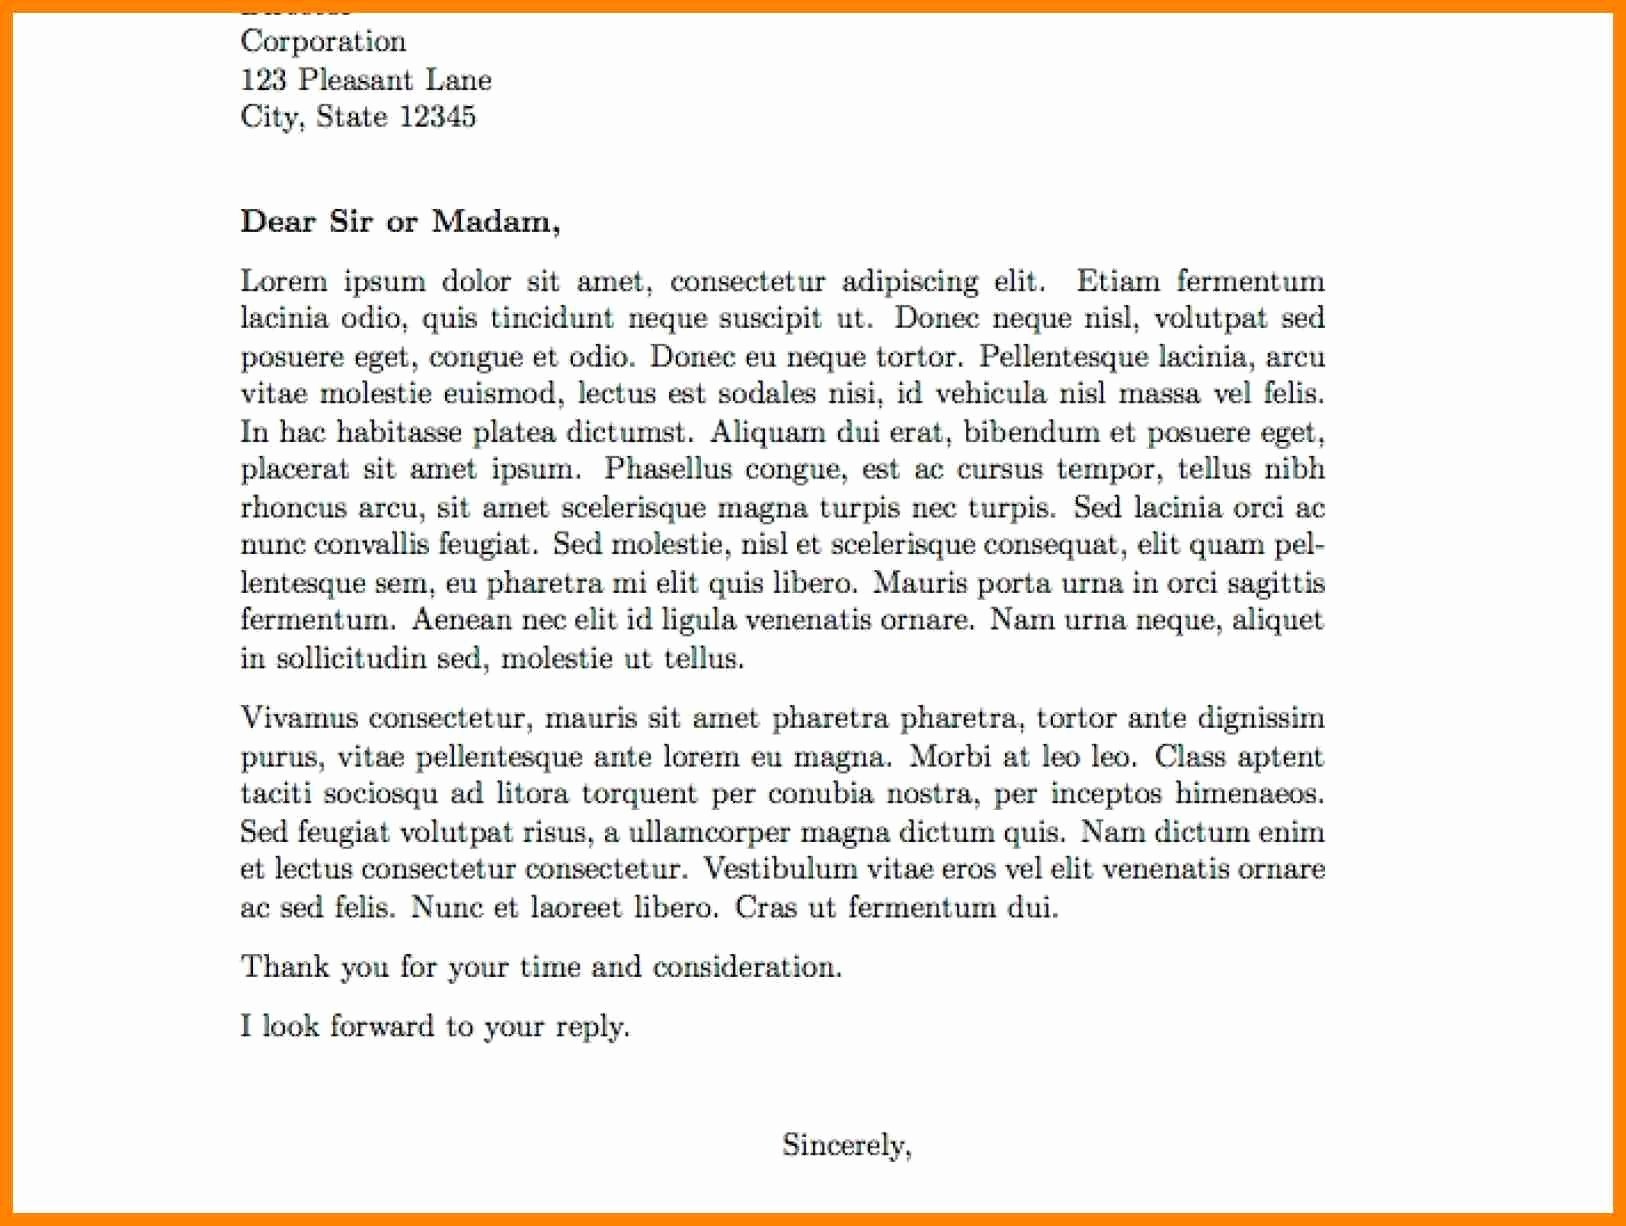 Mission Trip Support Letter Template Luxury Template for Mission Trip Support Letter Samples